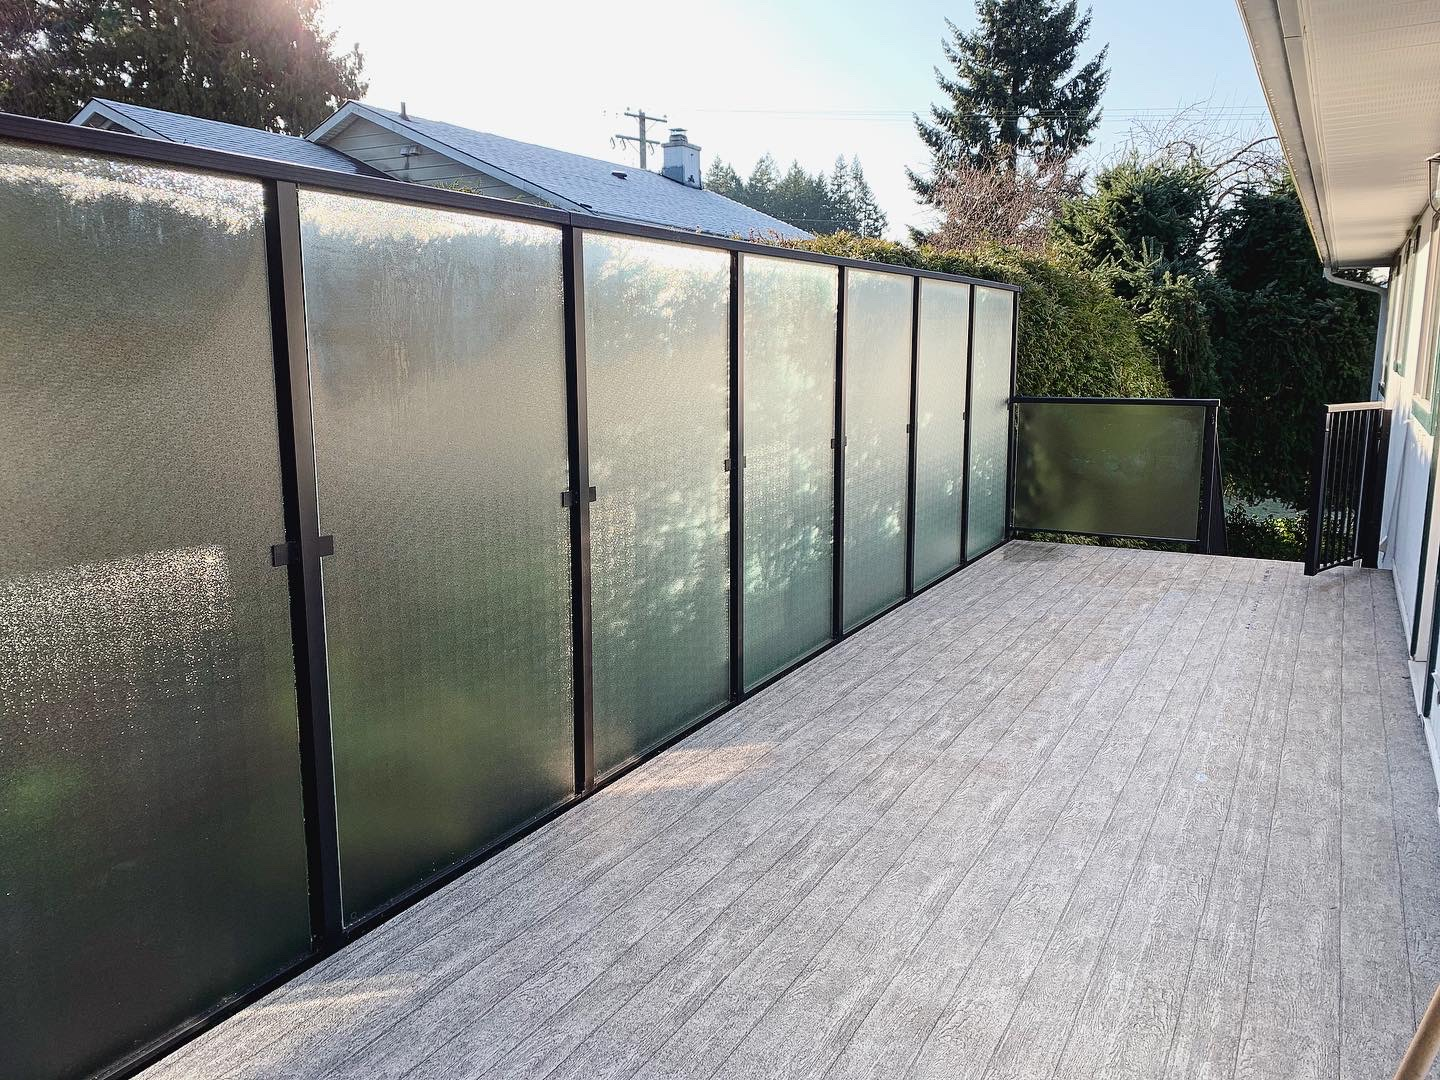 6' Sidemount Welded Glass Privacy Rail